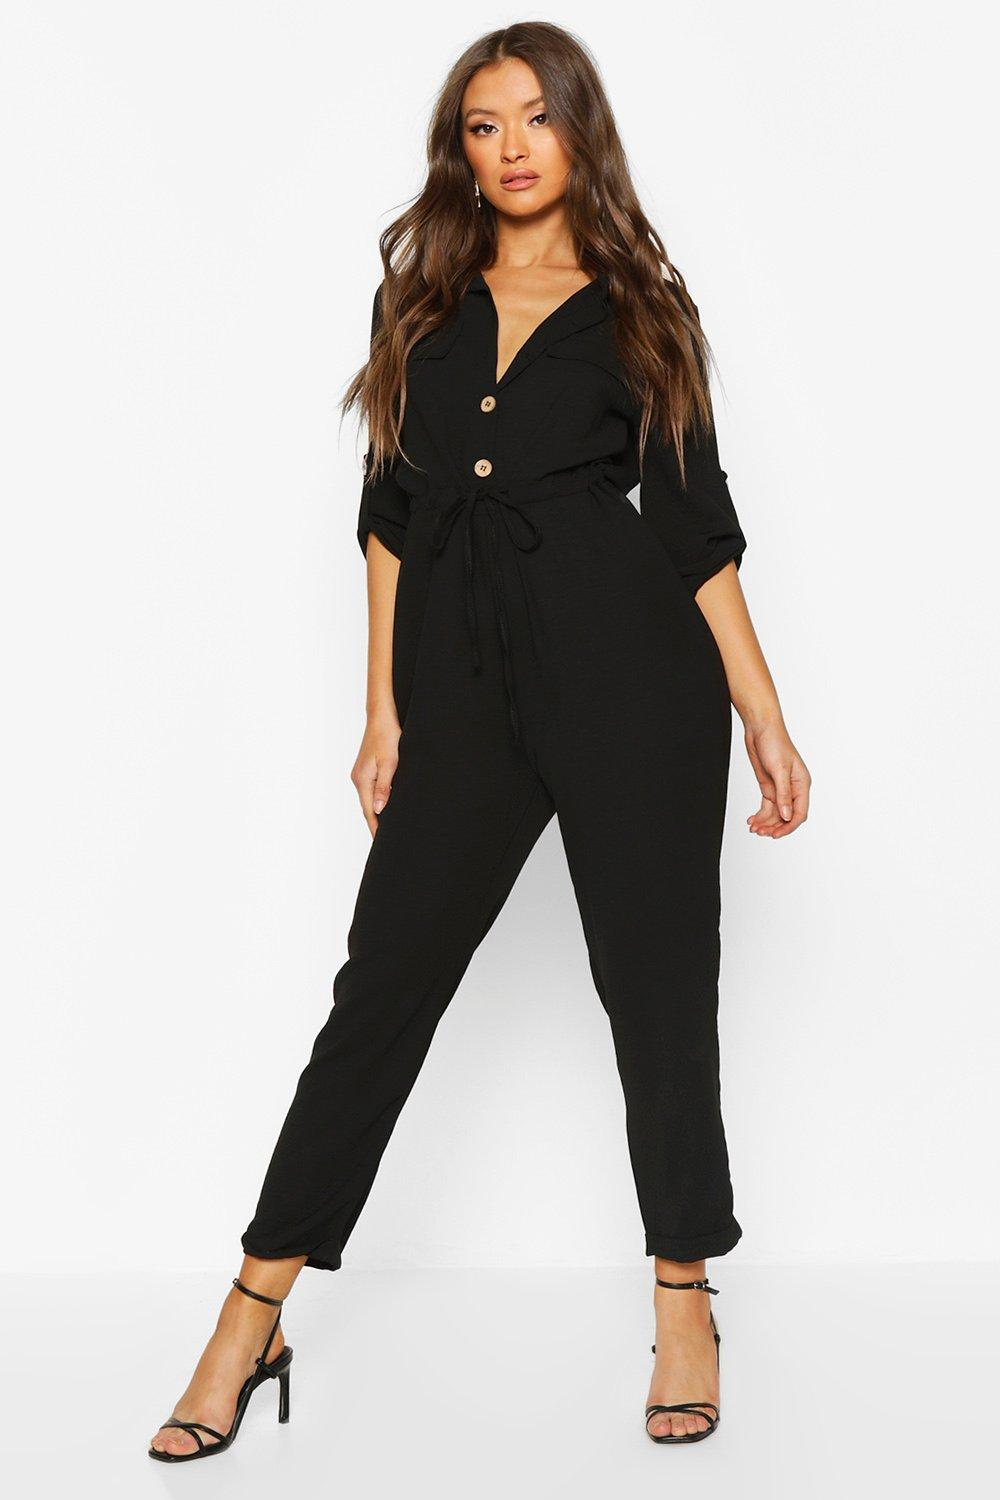 boohoo Womens Utility Button Front Boiler Suit - Black - 8, Black